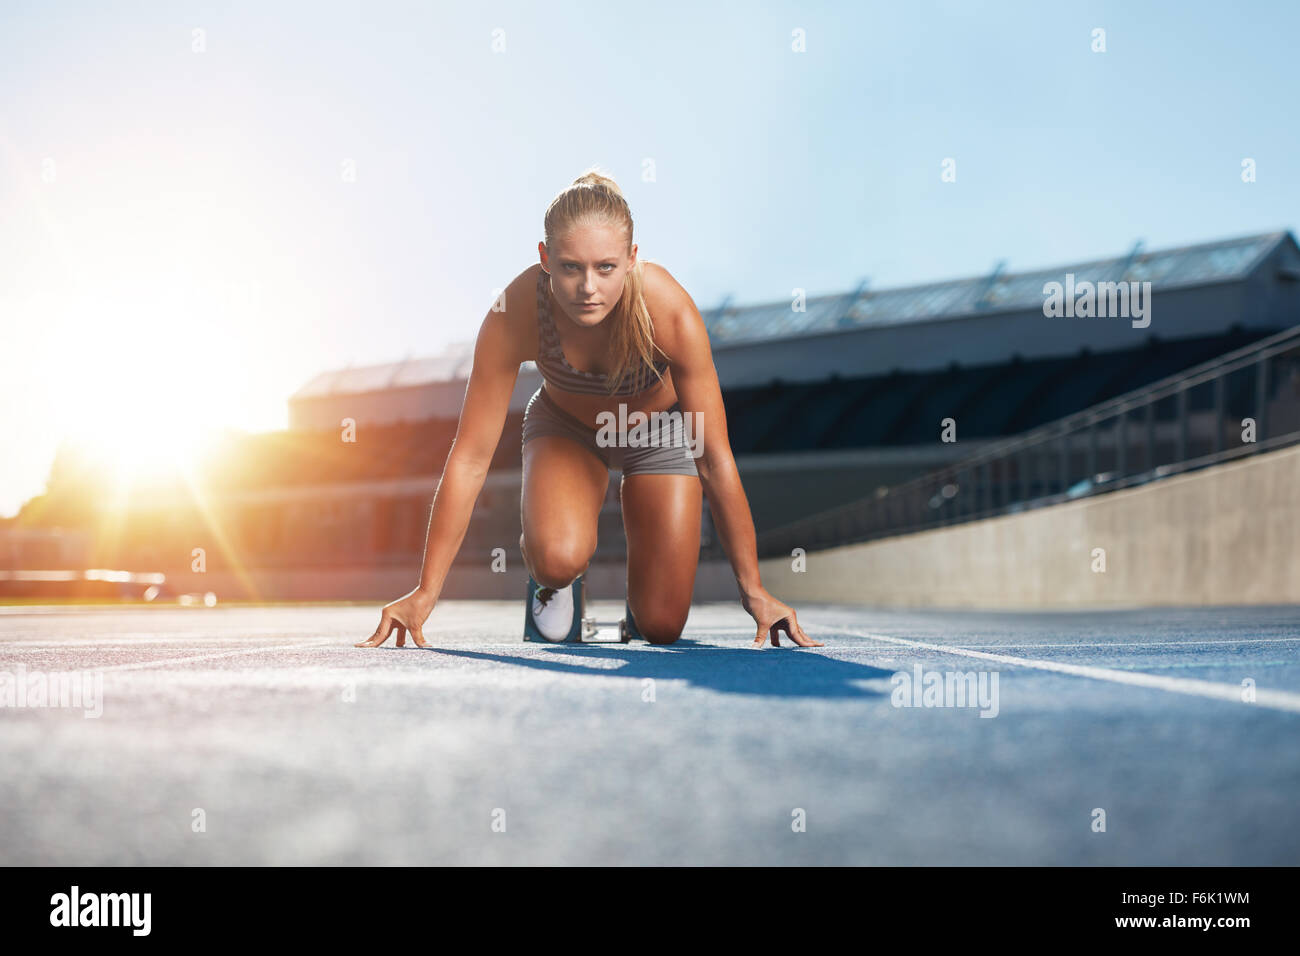 Confident young female athlete in starting position ready to start a sprint. Woman sprinter ready for a run on racetrack - Stock Image